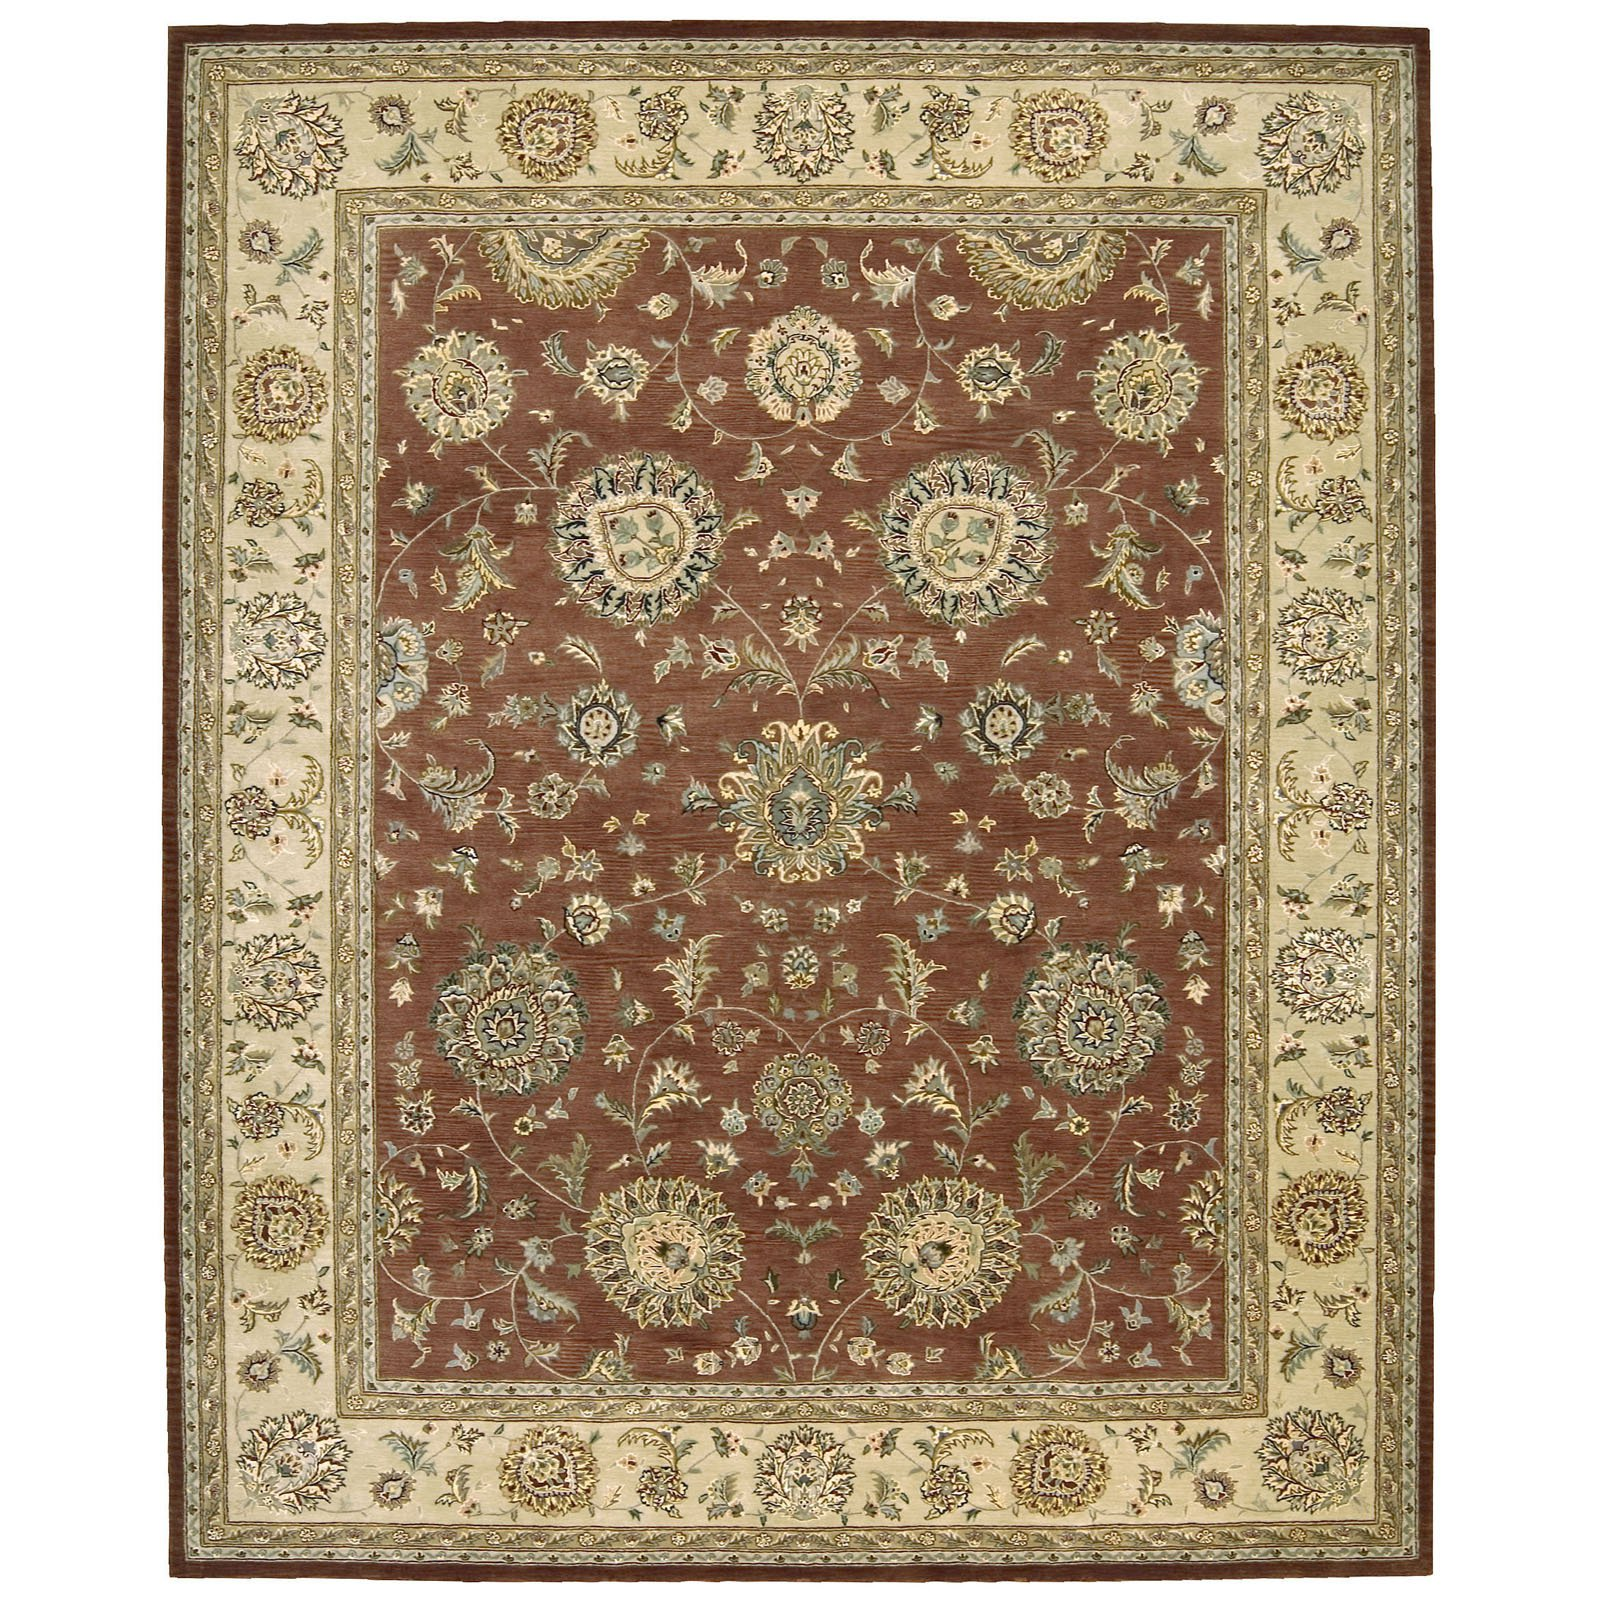 Nourison 2000 2258 Oriental Rug Rust-6 ft. Round by Nourison Rug Corp